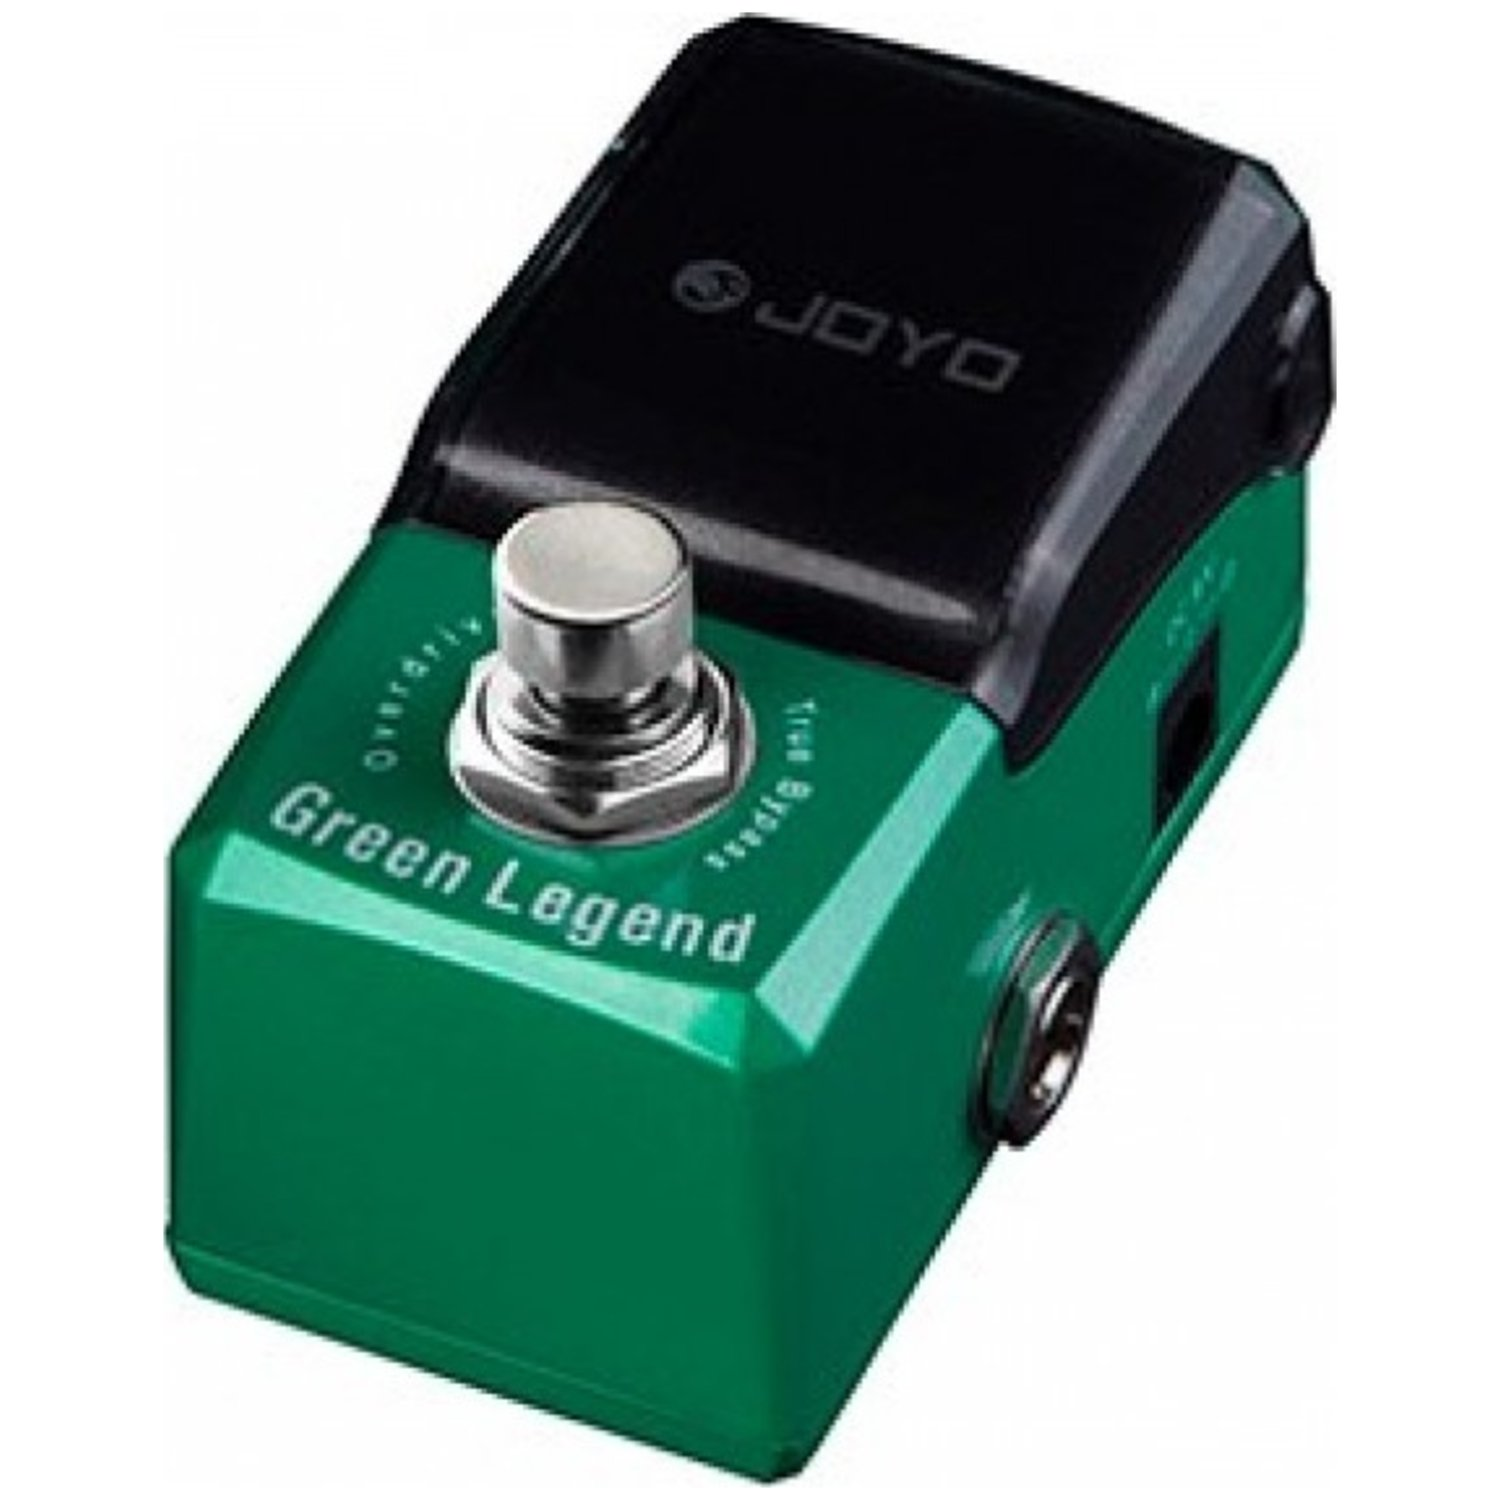 joyo jf 319 green legend overdrive trueà bypass mini